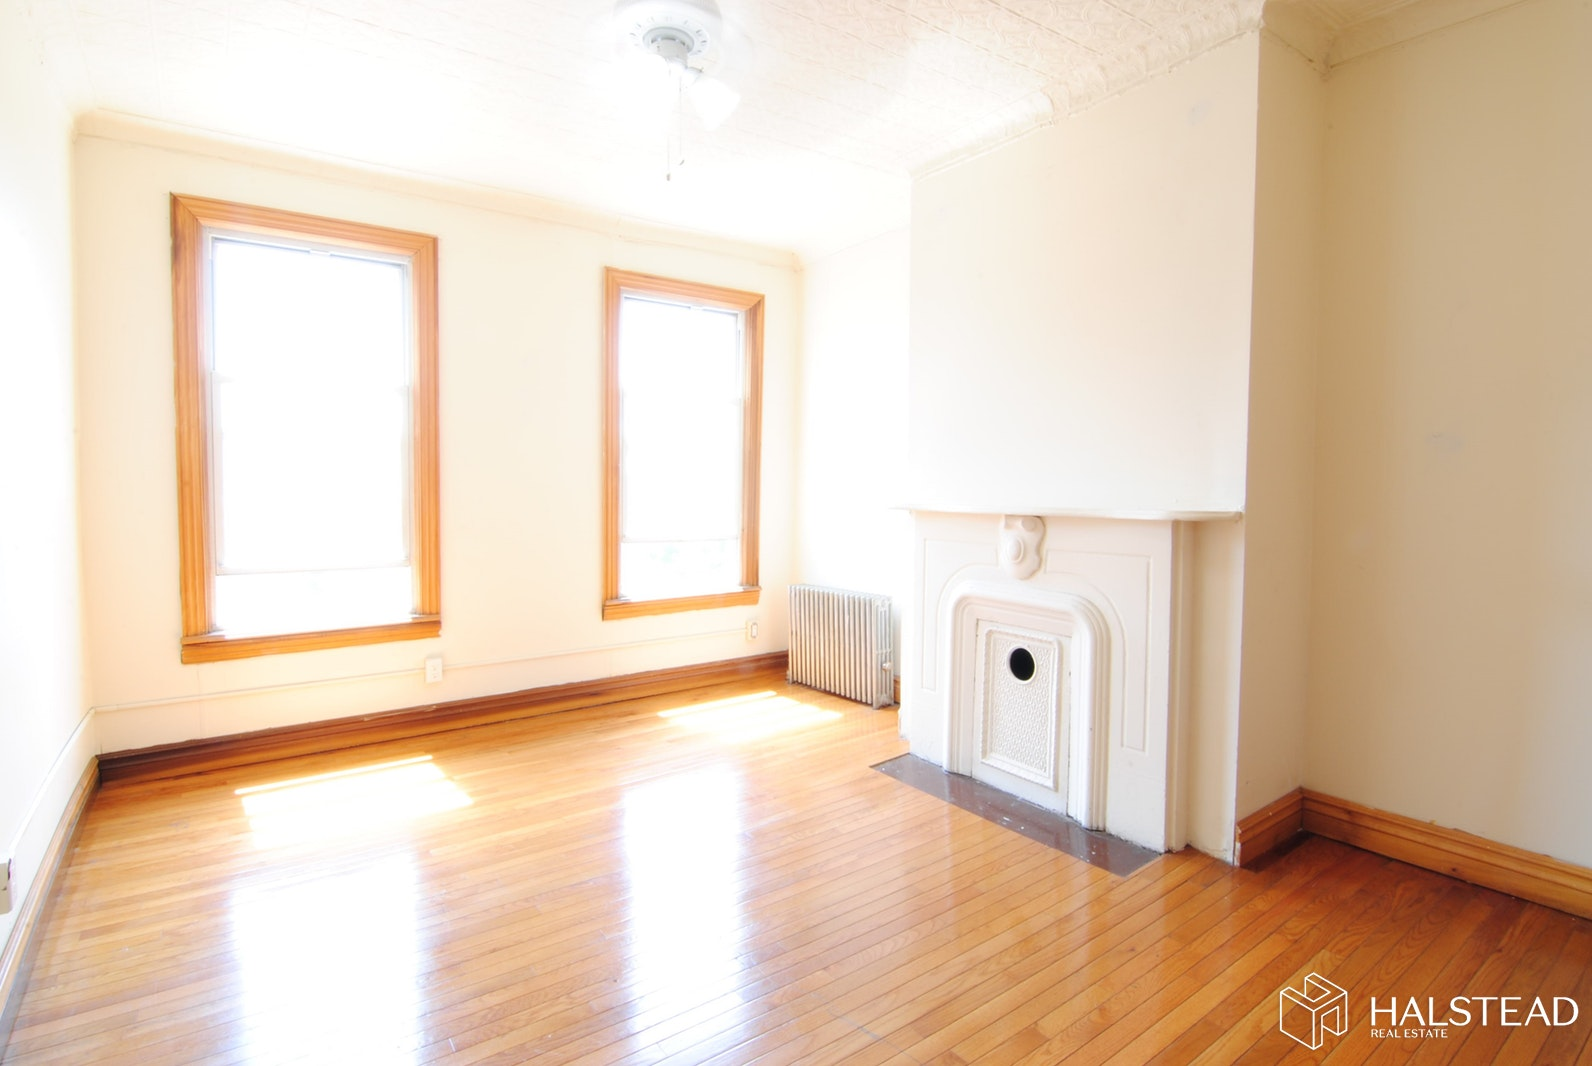 283 22nd Street 3l, Greenwood, Brooklyn, NY, 11215, $2,000, Rented Property, Halstead Real Estate, Photo 1